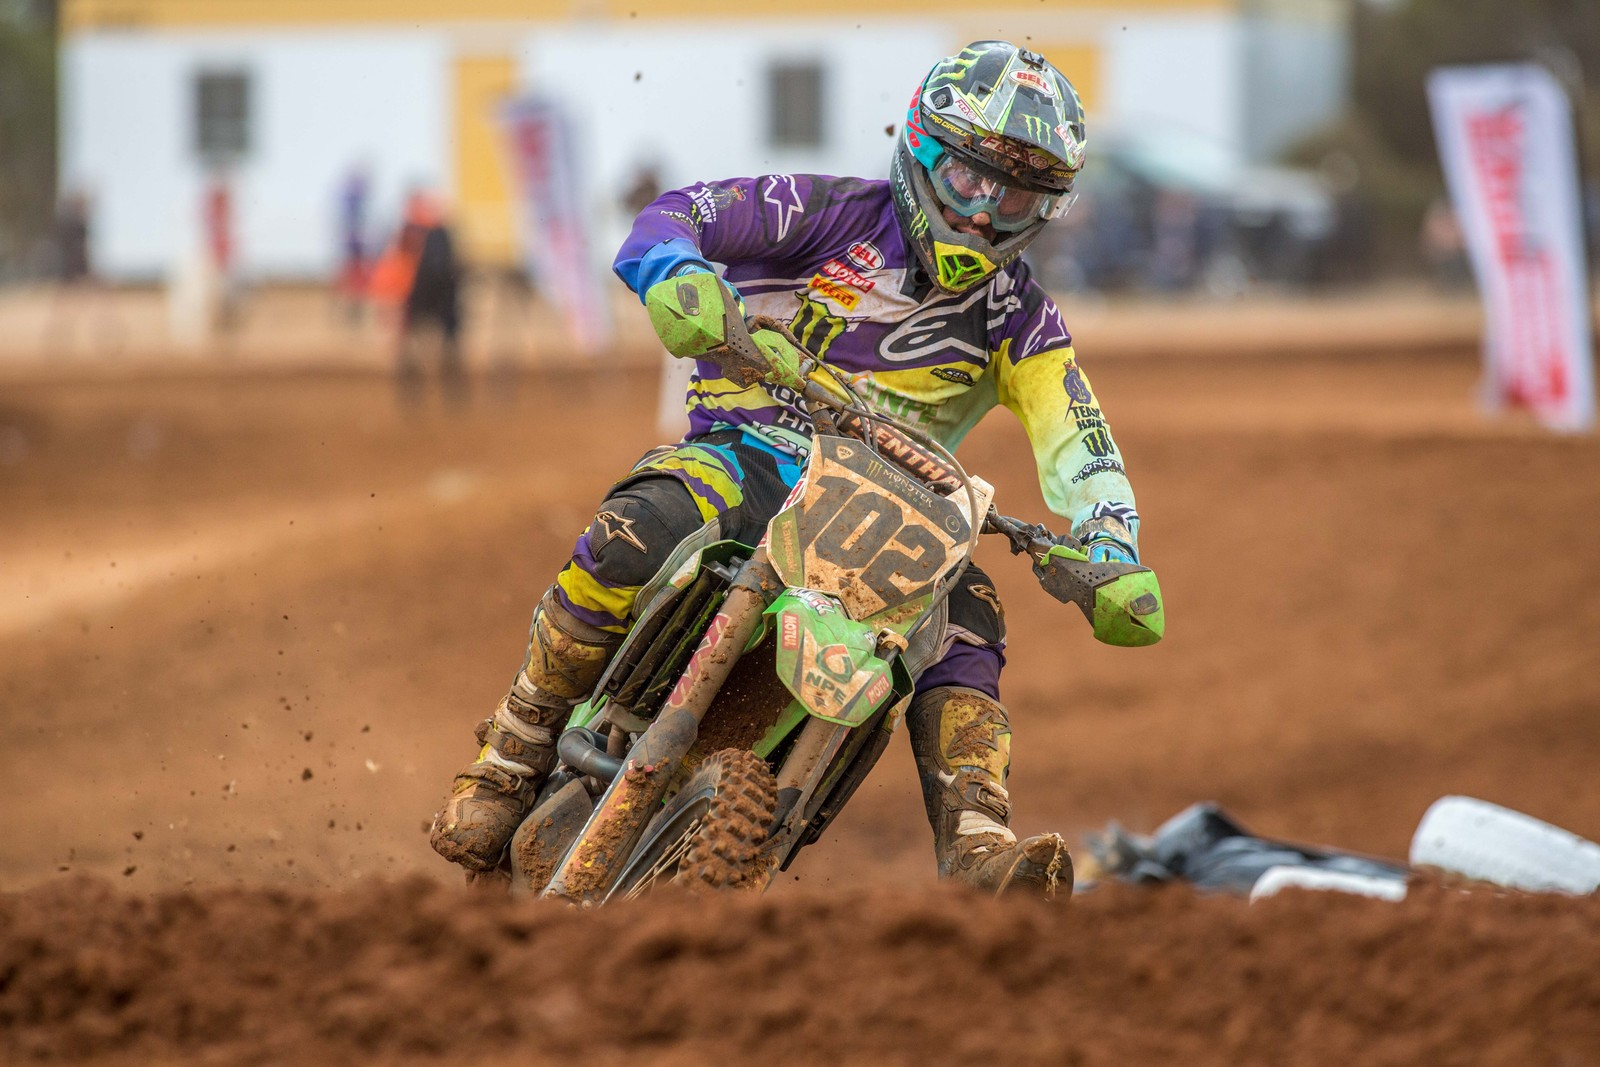 Matt Moss - Australian Motul Mx Championships: Round 4, Murray Bridge - Motocross Pictures - Vital MX